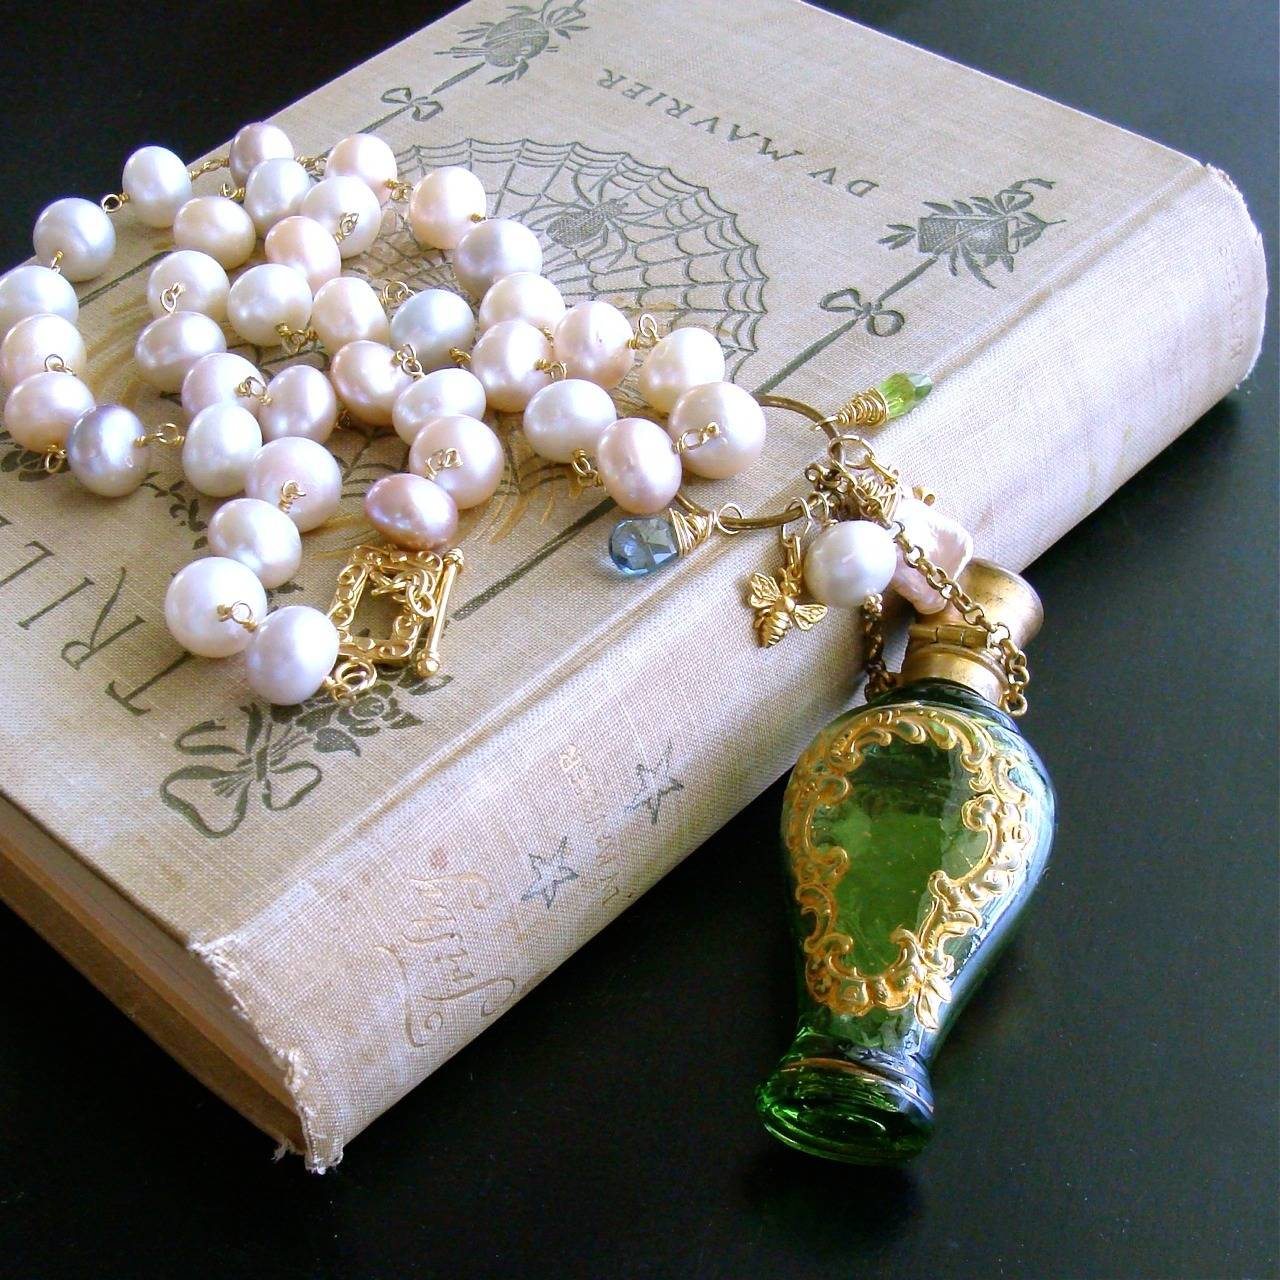 Cherub Chatelaine Scent Bottle Pink Baroque Pearls Necklace 5